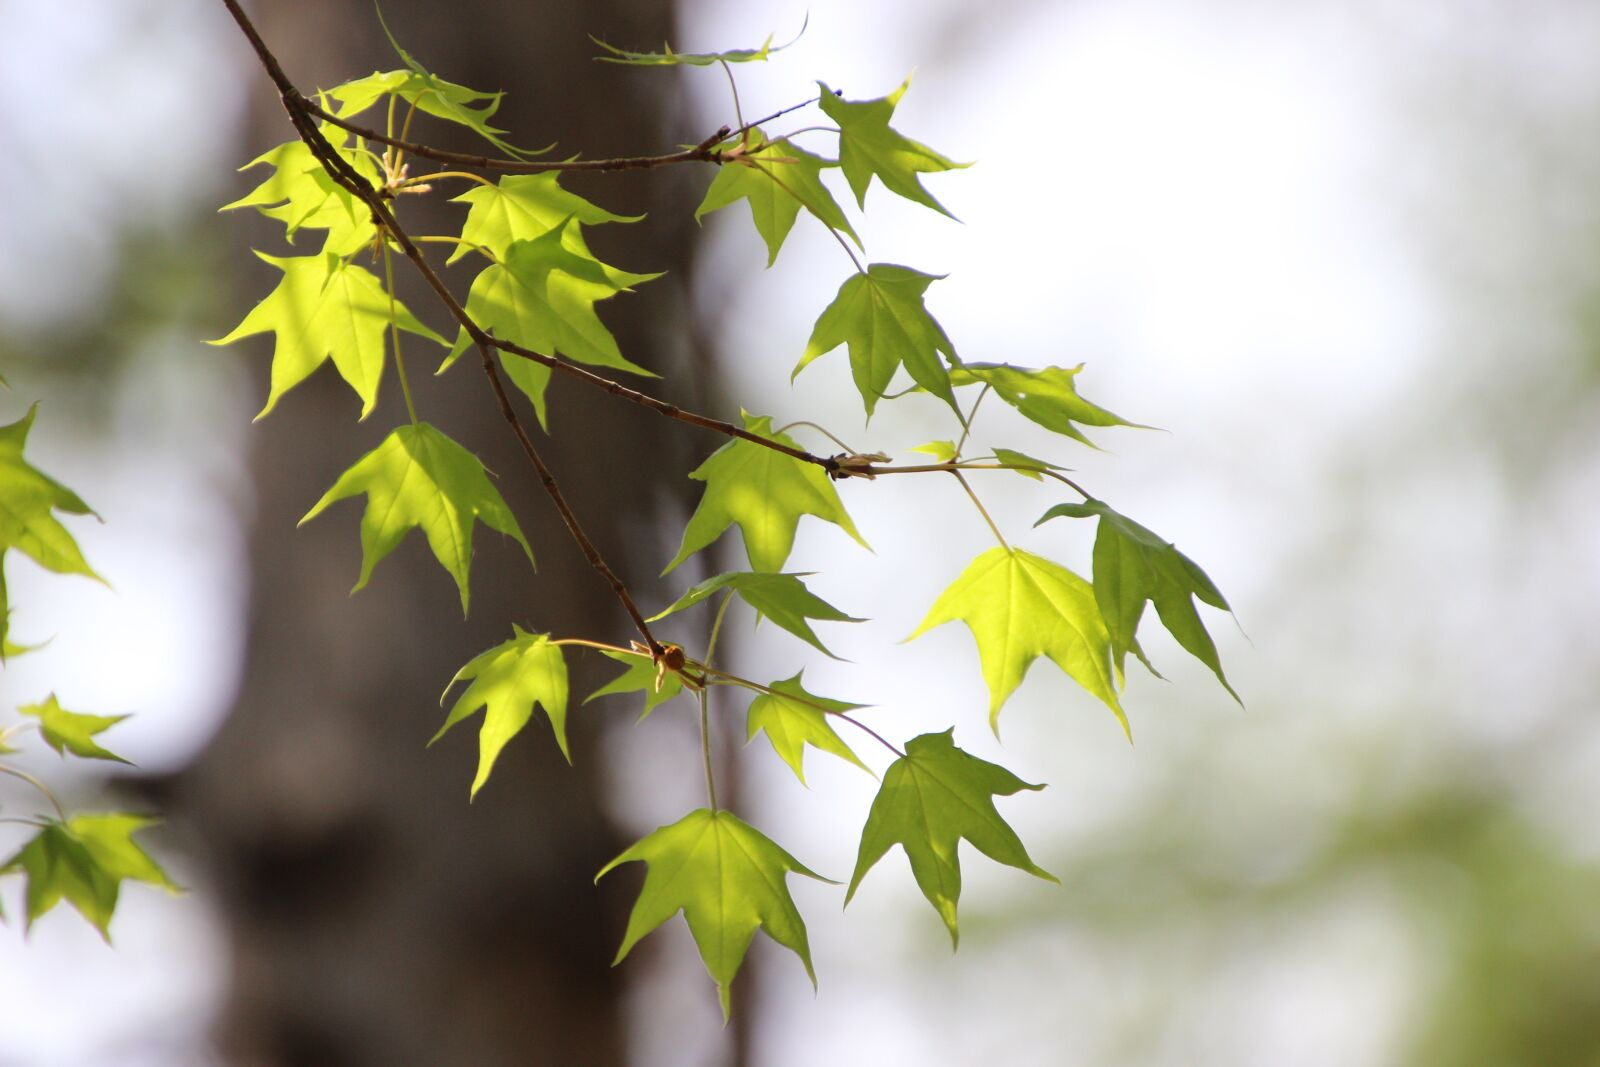 """Canon EOS 600D (Rebel EOS T3i / EOS Kiss X5) sample photo. """"Leaves, maple, sprigs"""" photography"""